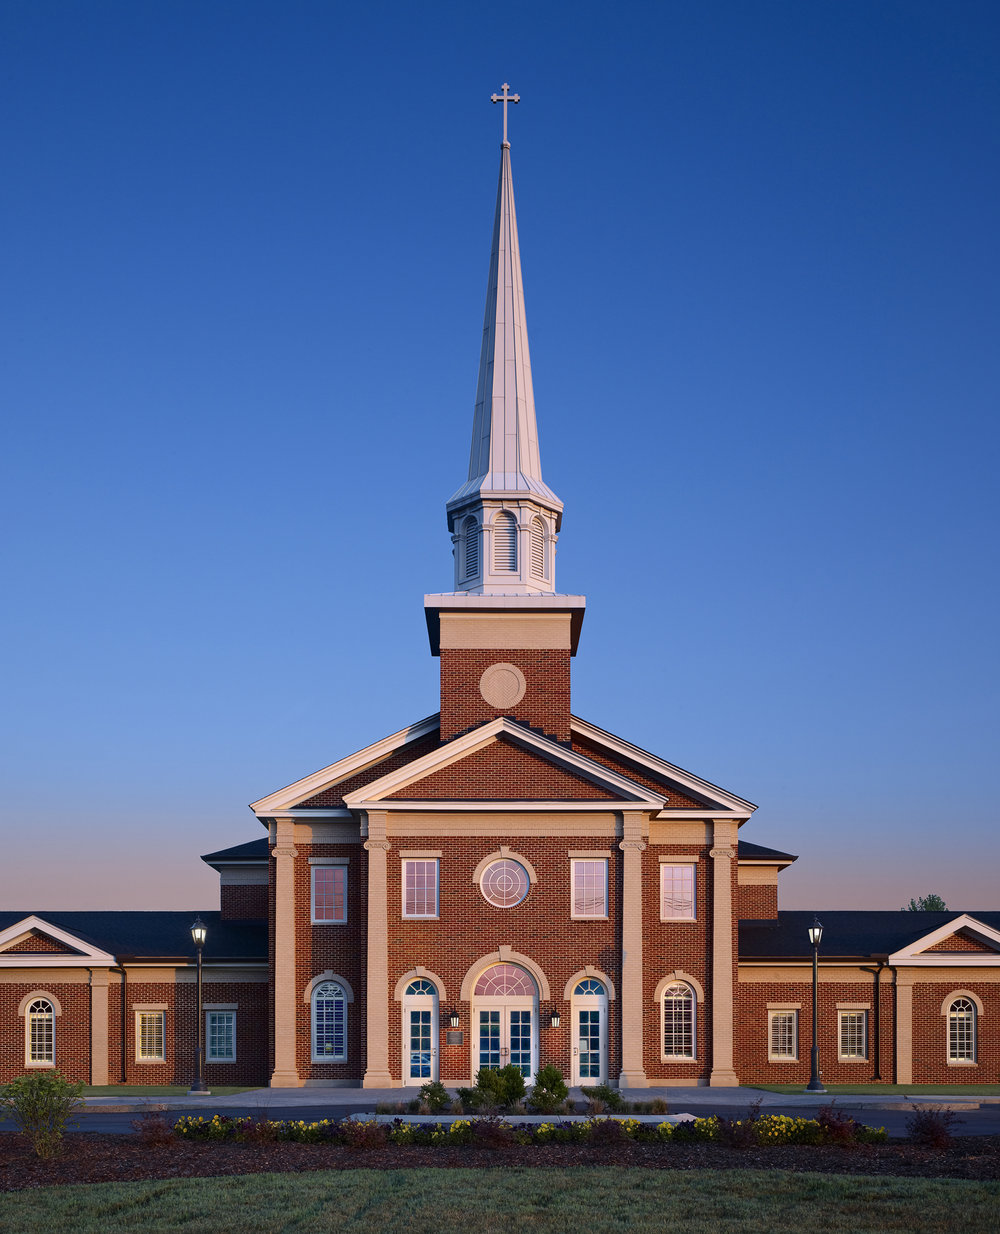 03_Hord Architects_Crossroads Baptist_Exterior - 7 in high, 300 dpi.jpg